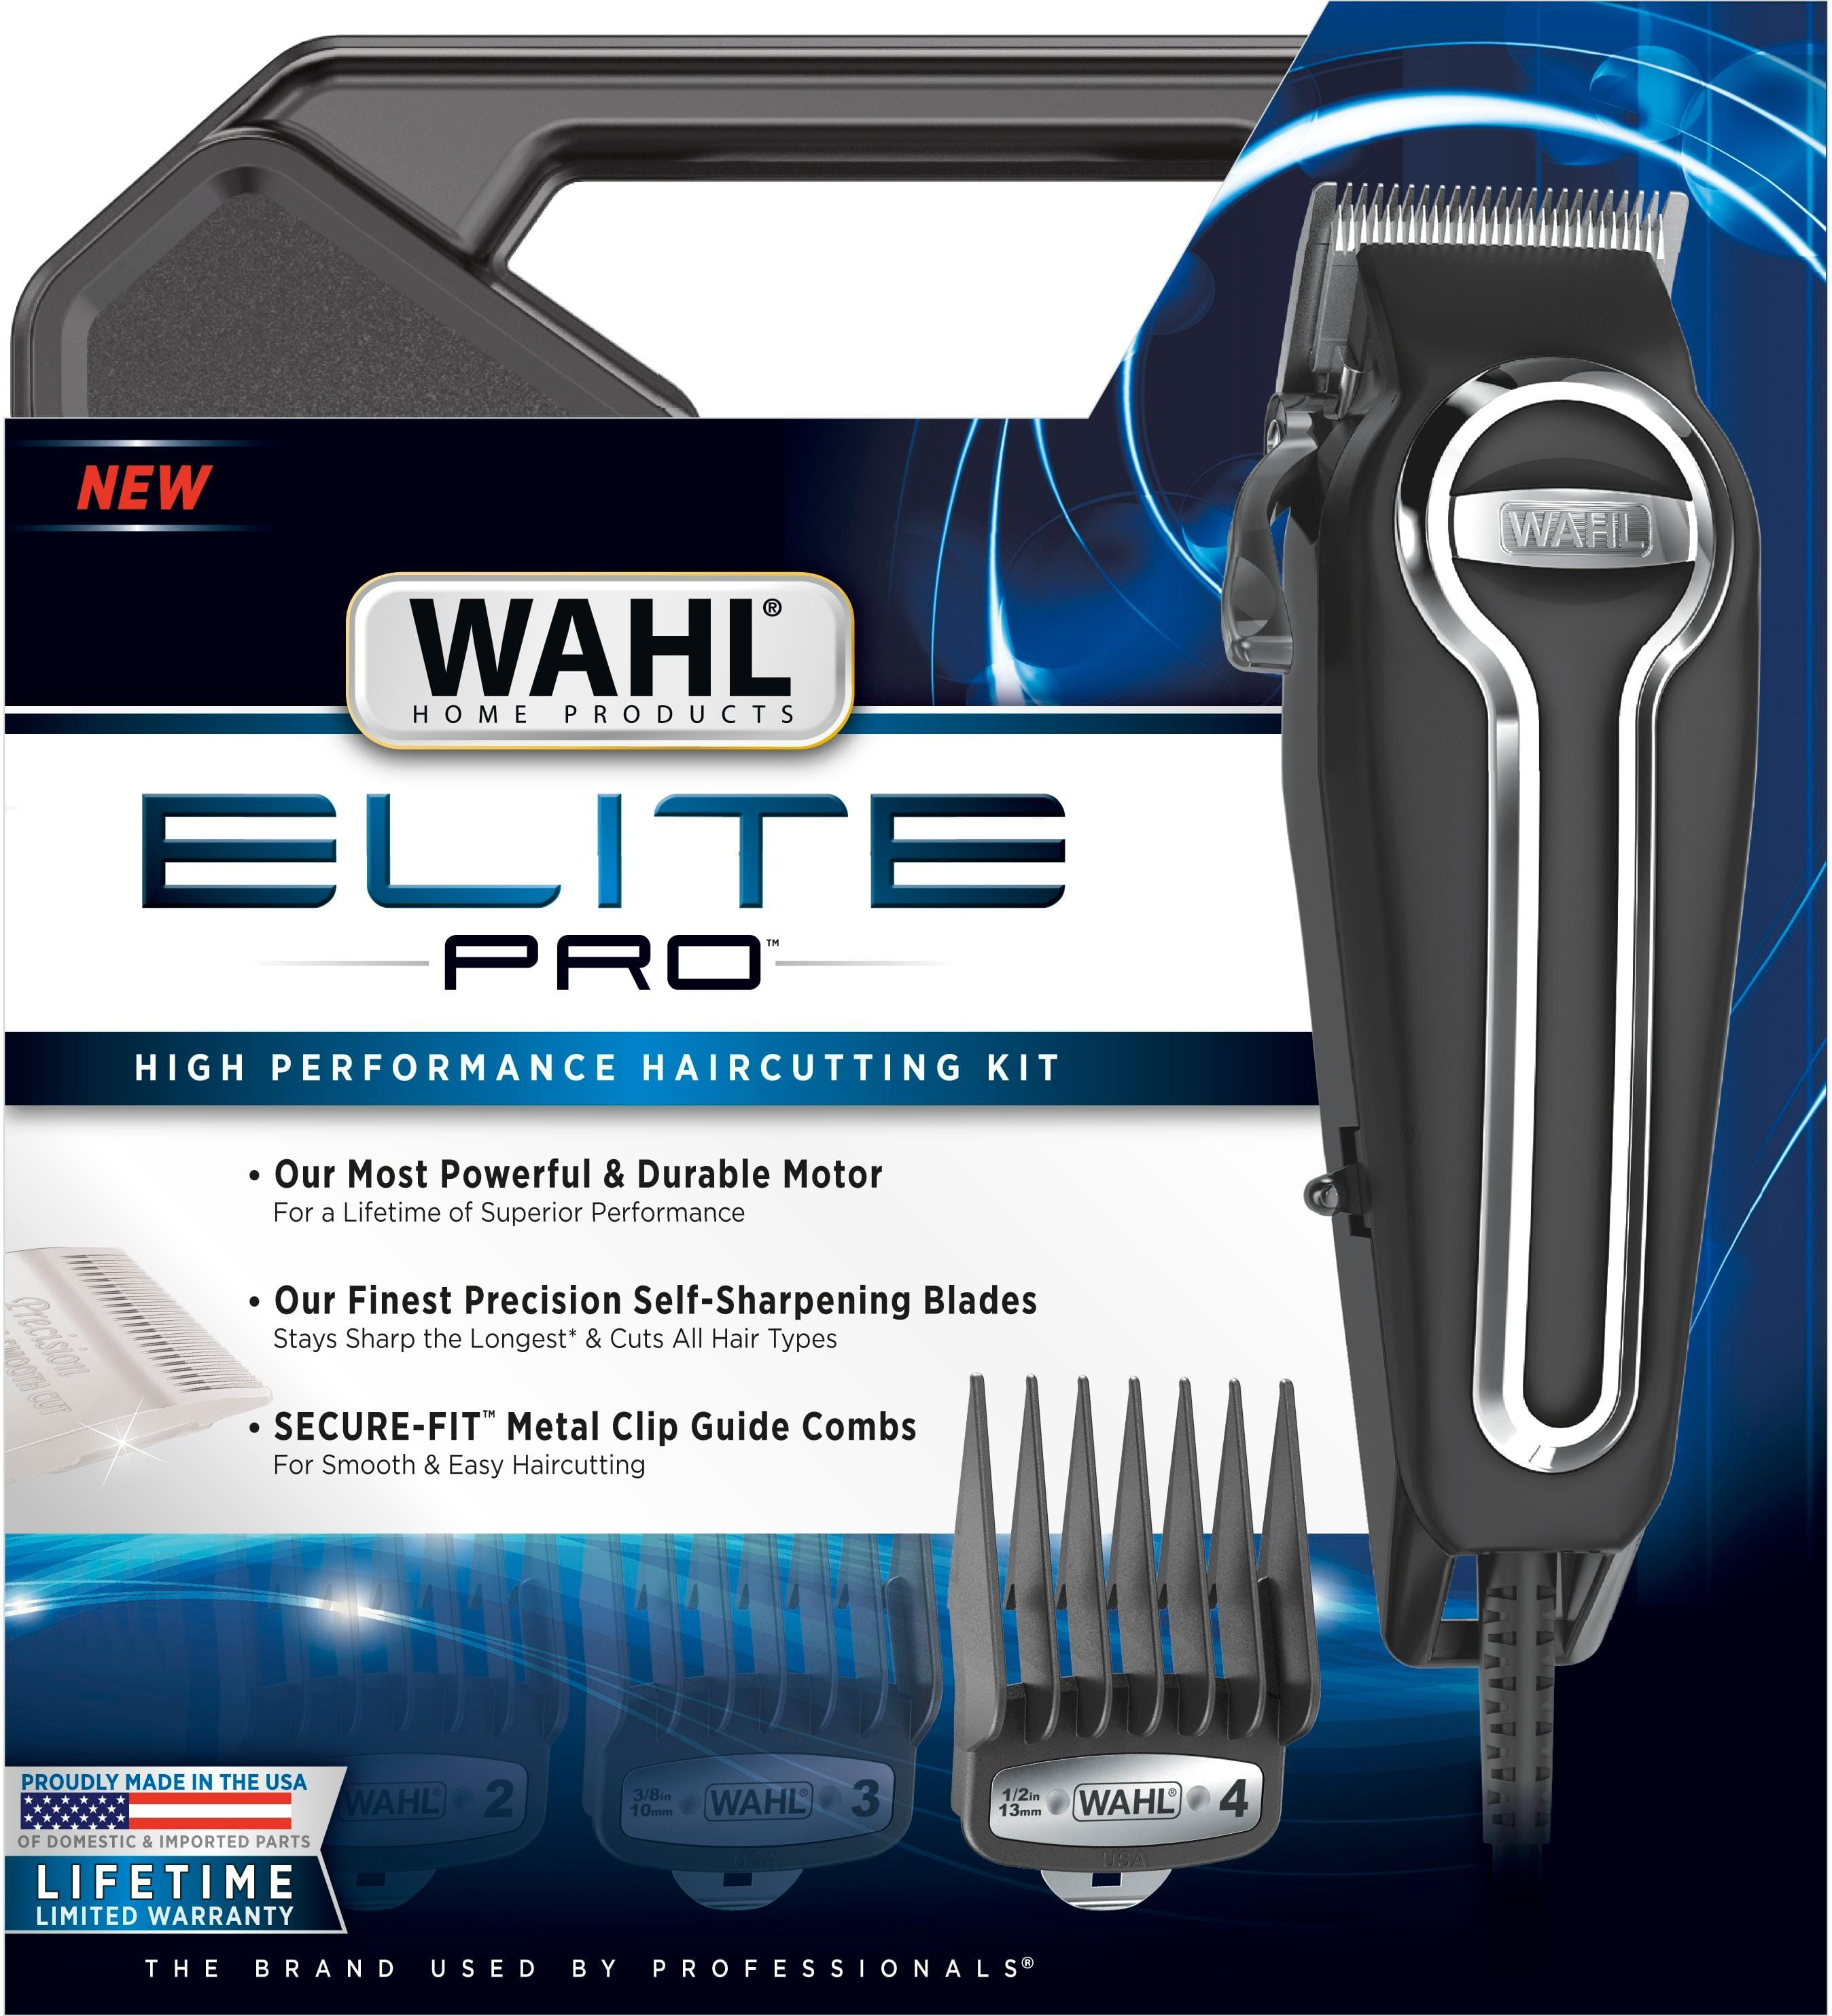 Target - Wahl Elite Pro Haircut kit $38.99 - Free Ship with red card - YMMV